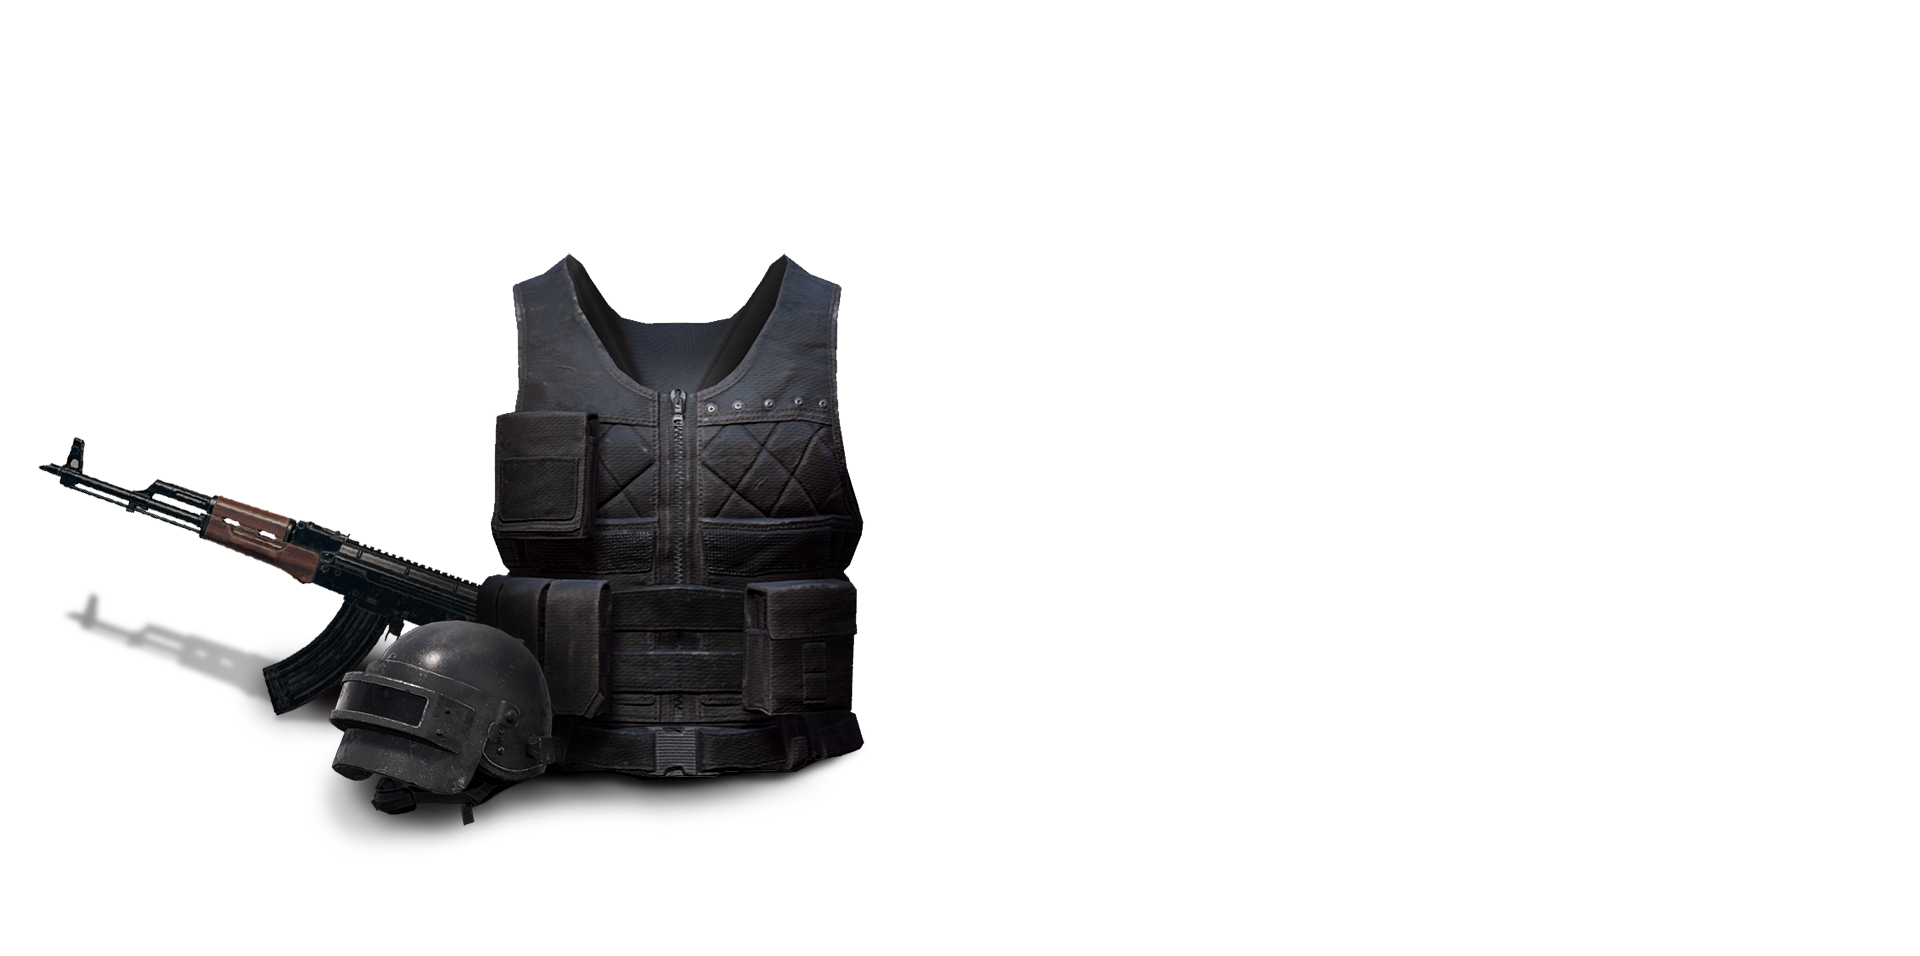 Armored Vest, Helmet, Weapon, Transparent PNG Image image #48224